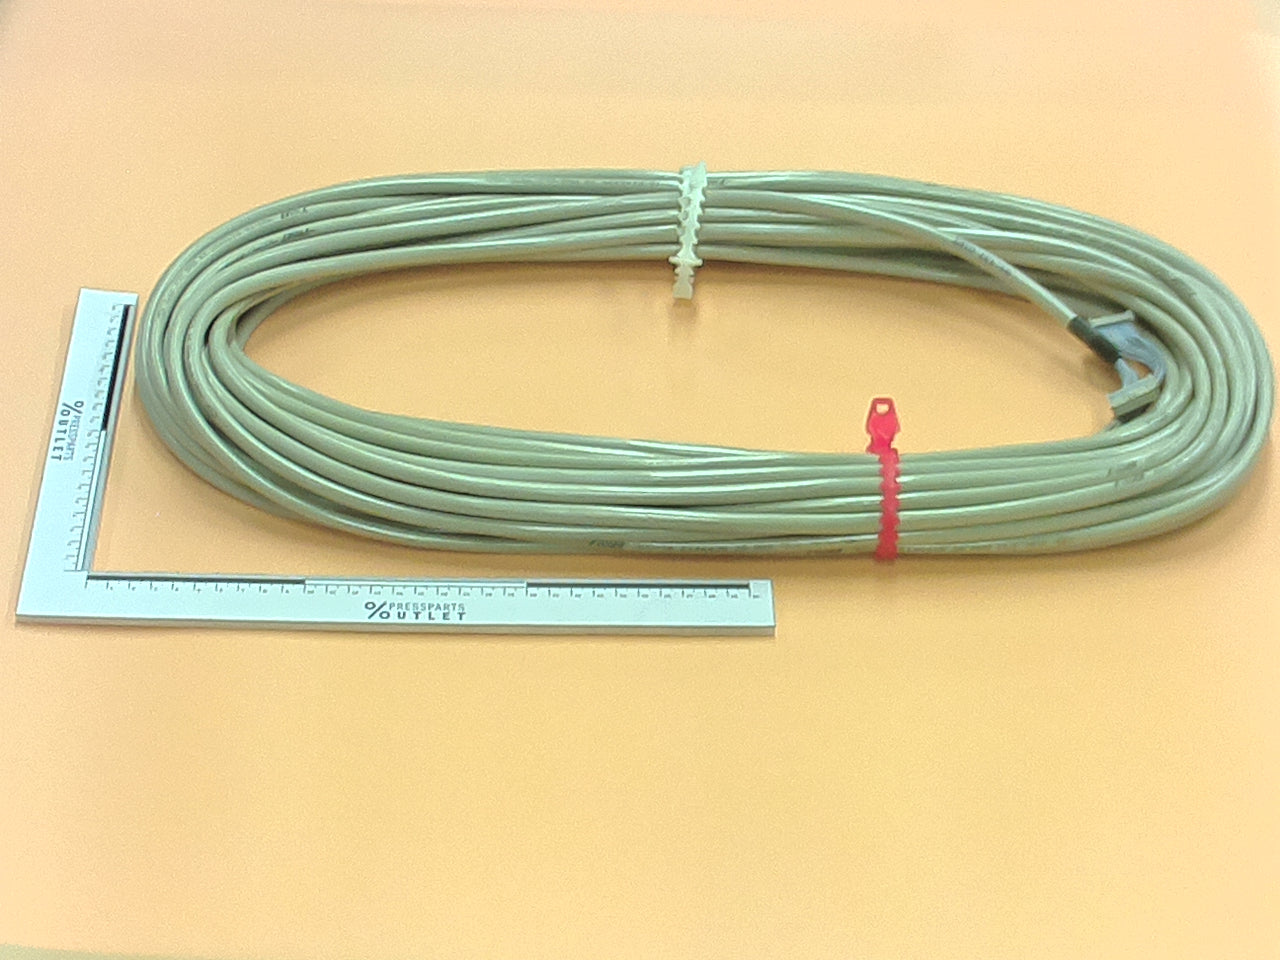 Interface cable SVM-FDK 30m - 91.133.0189/ - Schnittste.Leitung SVM-FDK 30m